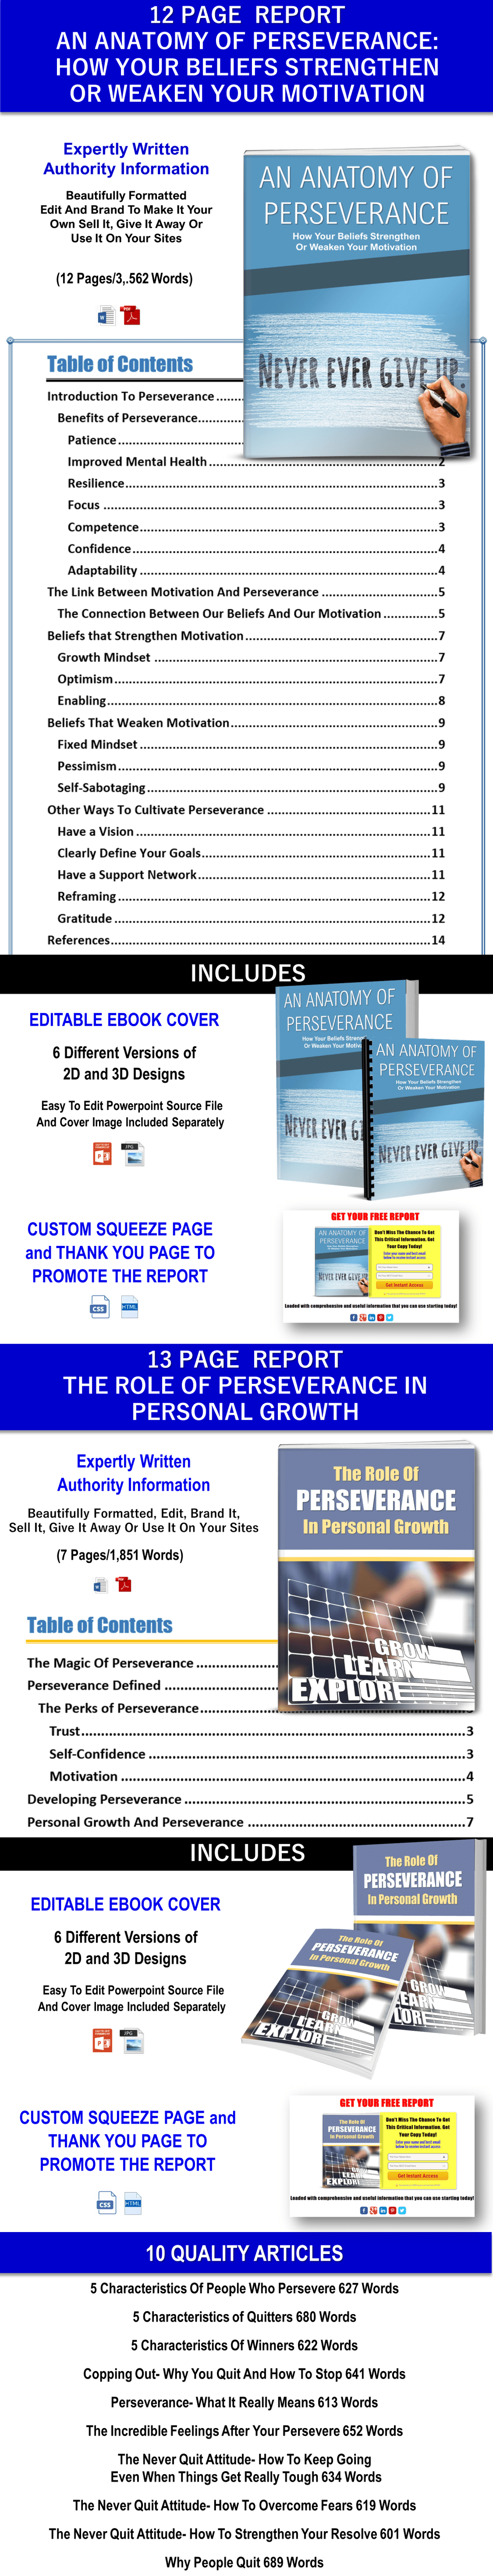 Perseverance Report and Articles Private Label Rights